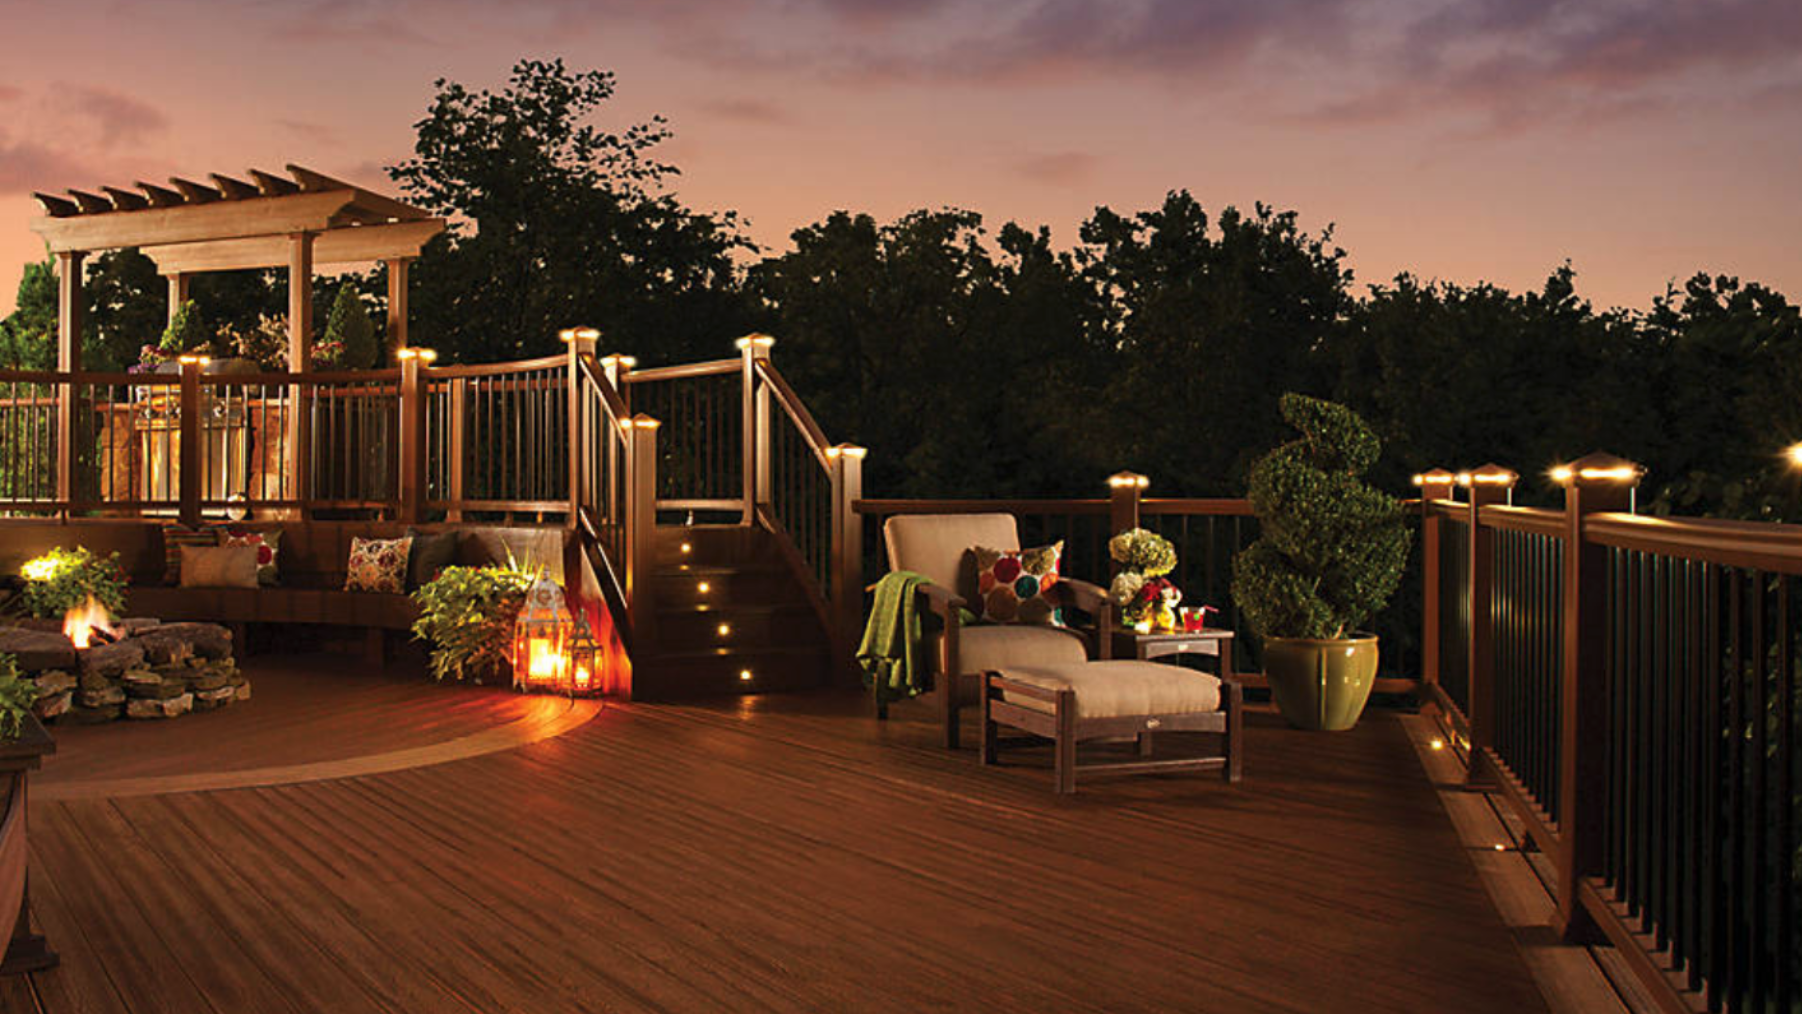 The best deck lighting trends for butler pa area homeowners the best deck lighting trends for butler pa area homeowners aloadofball Choice Image